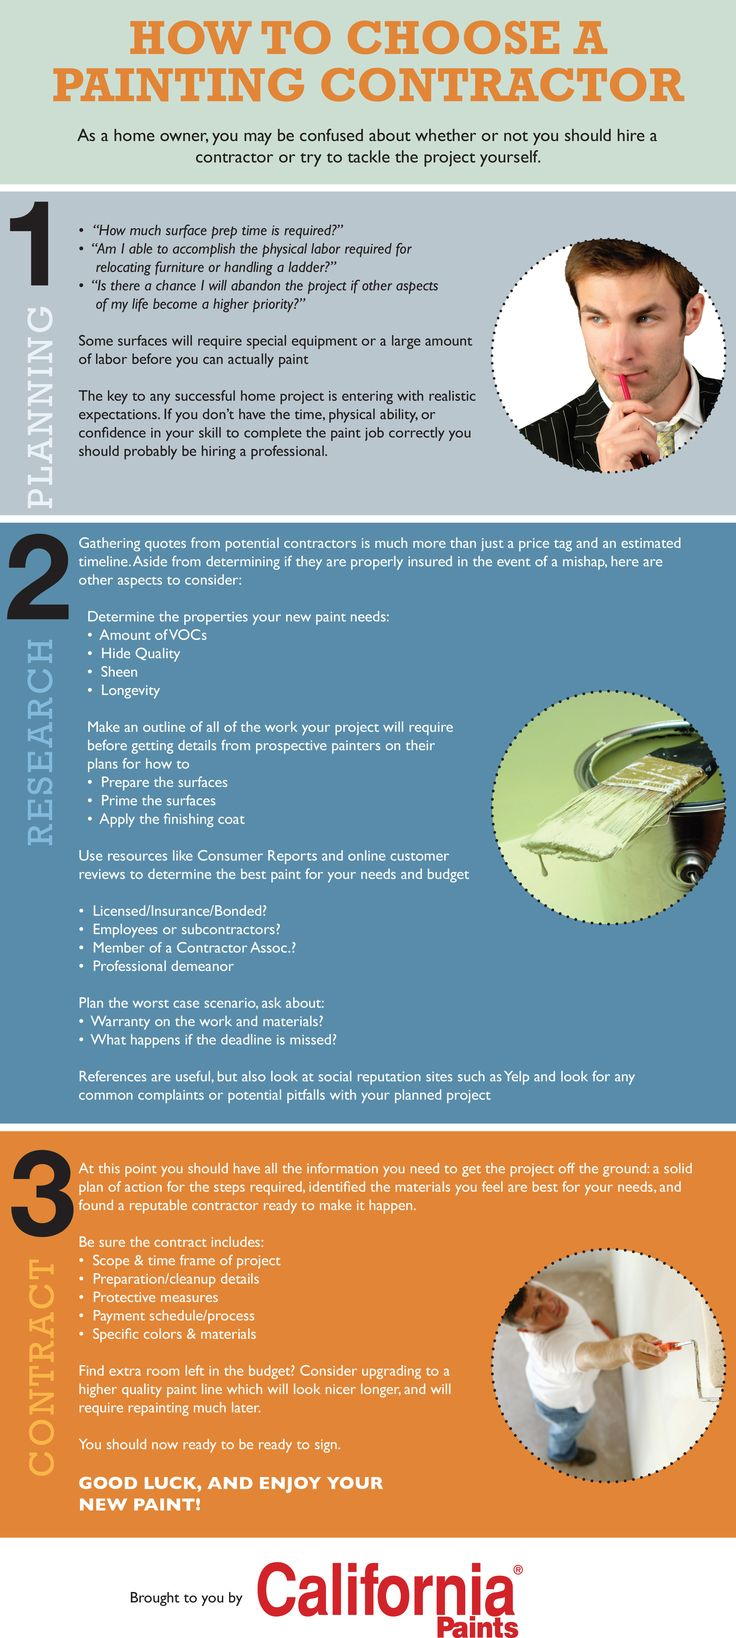 Painting amp remodeling contractors painters northern new jersey - We Crafted An Infographic To Help Guide You Through How To Hire A Painting Contractor